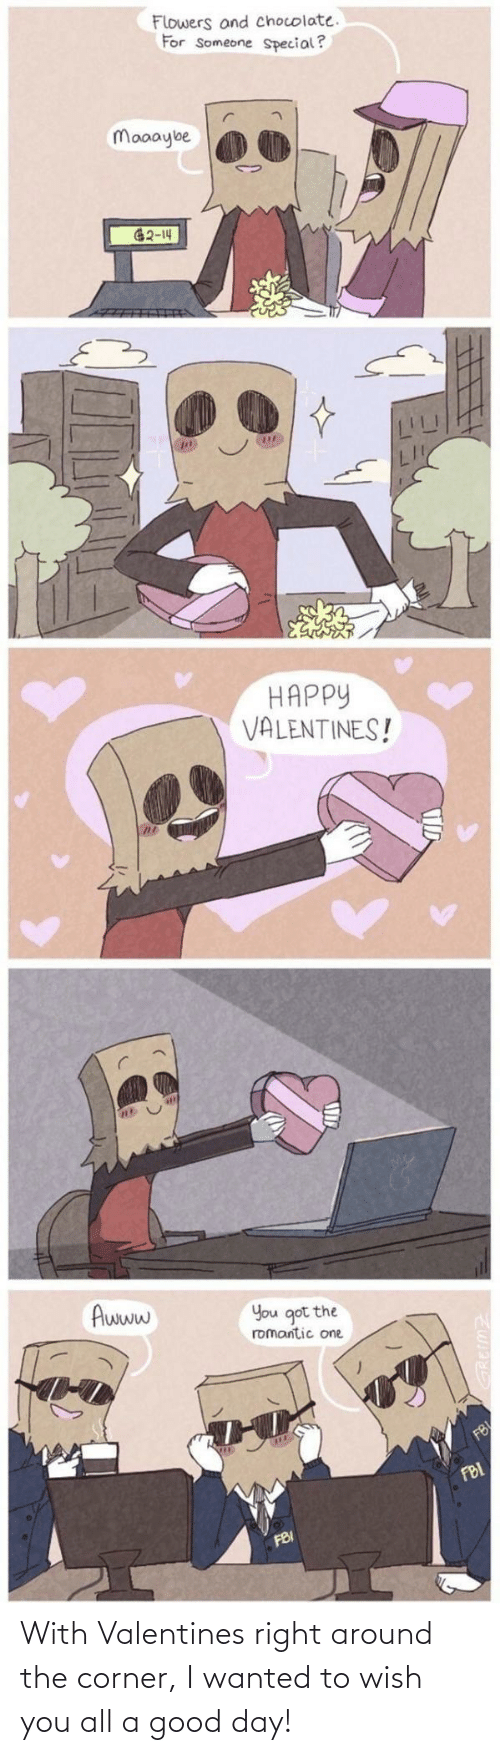 I Wanted: With Valentines right around the corner, I wanted to wish you all a good day!